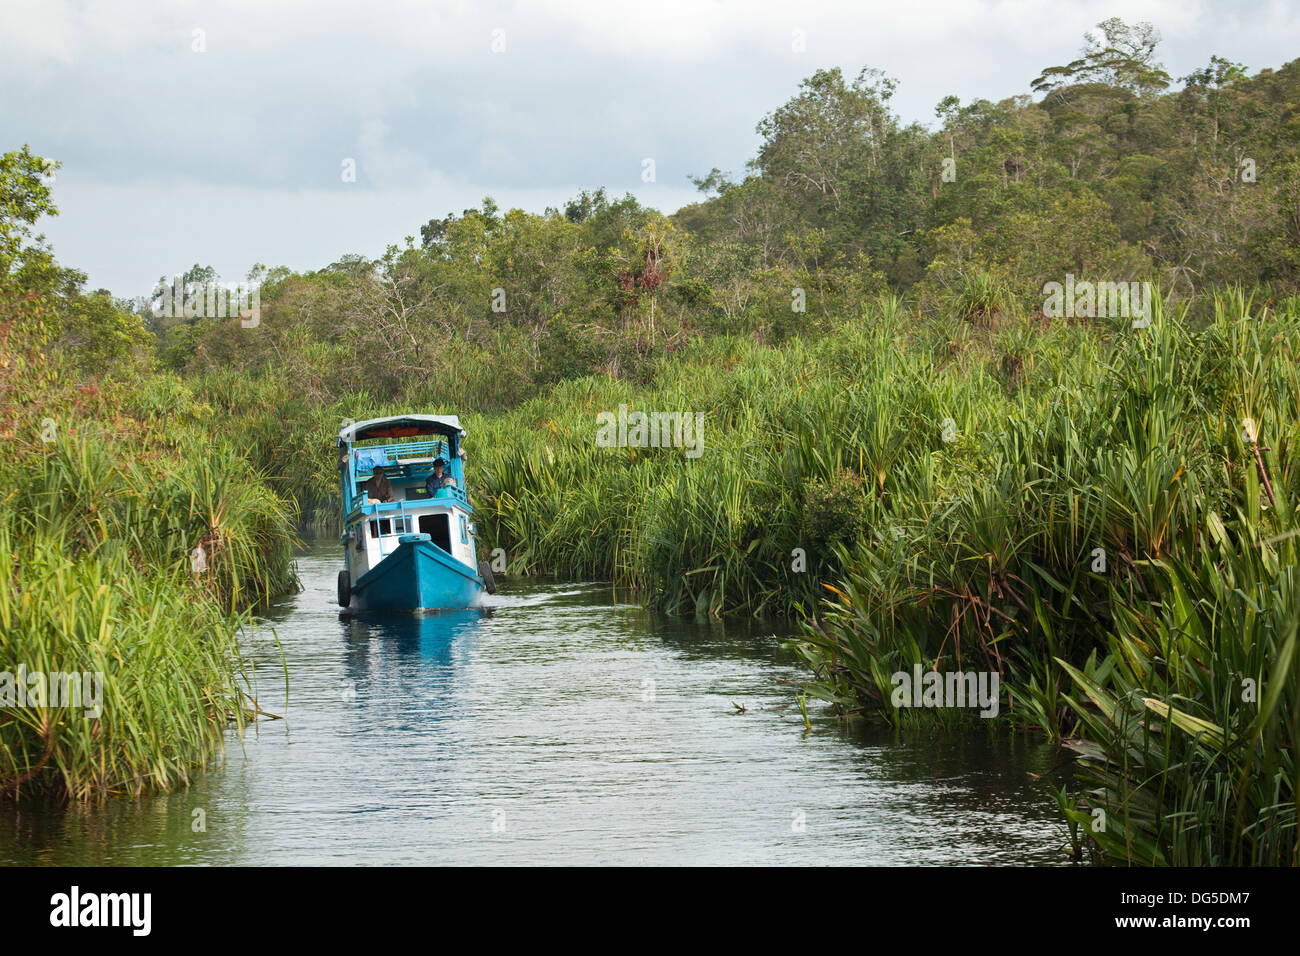 Indonesian klotok, a traditional river boat, on stream lined with Nipa Palms (Nypa fruticans) - Stock Image